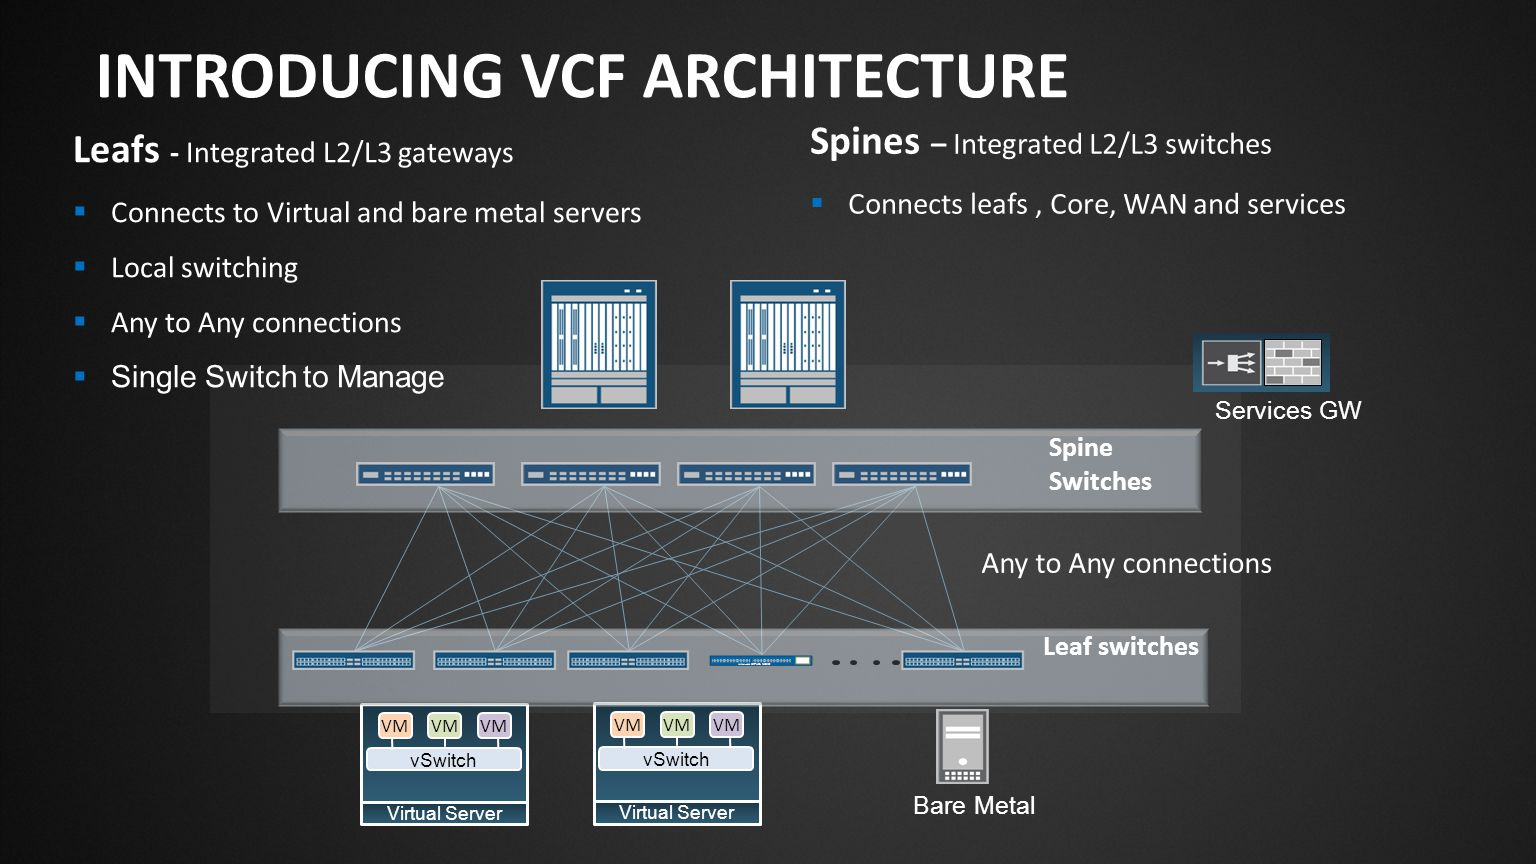 Introducing VCF architecture